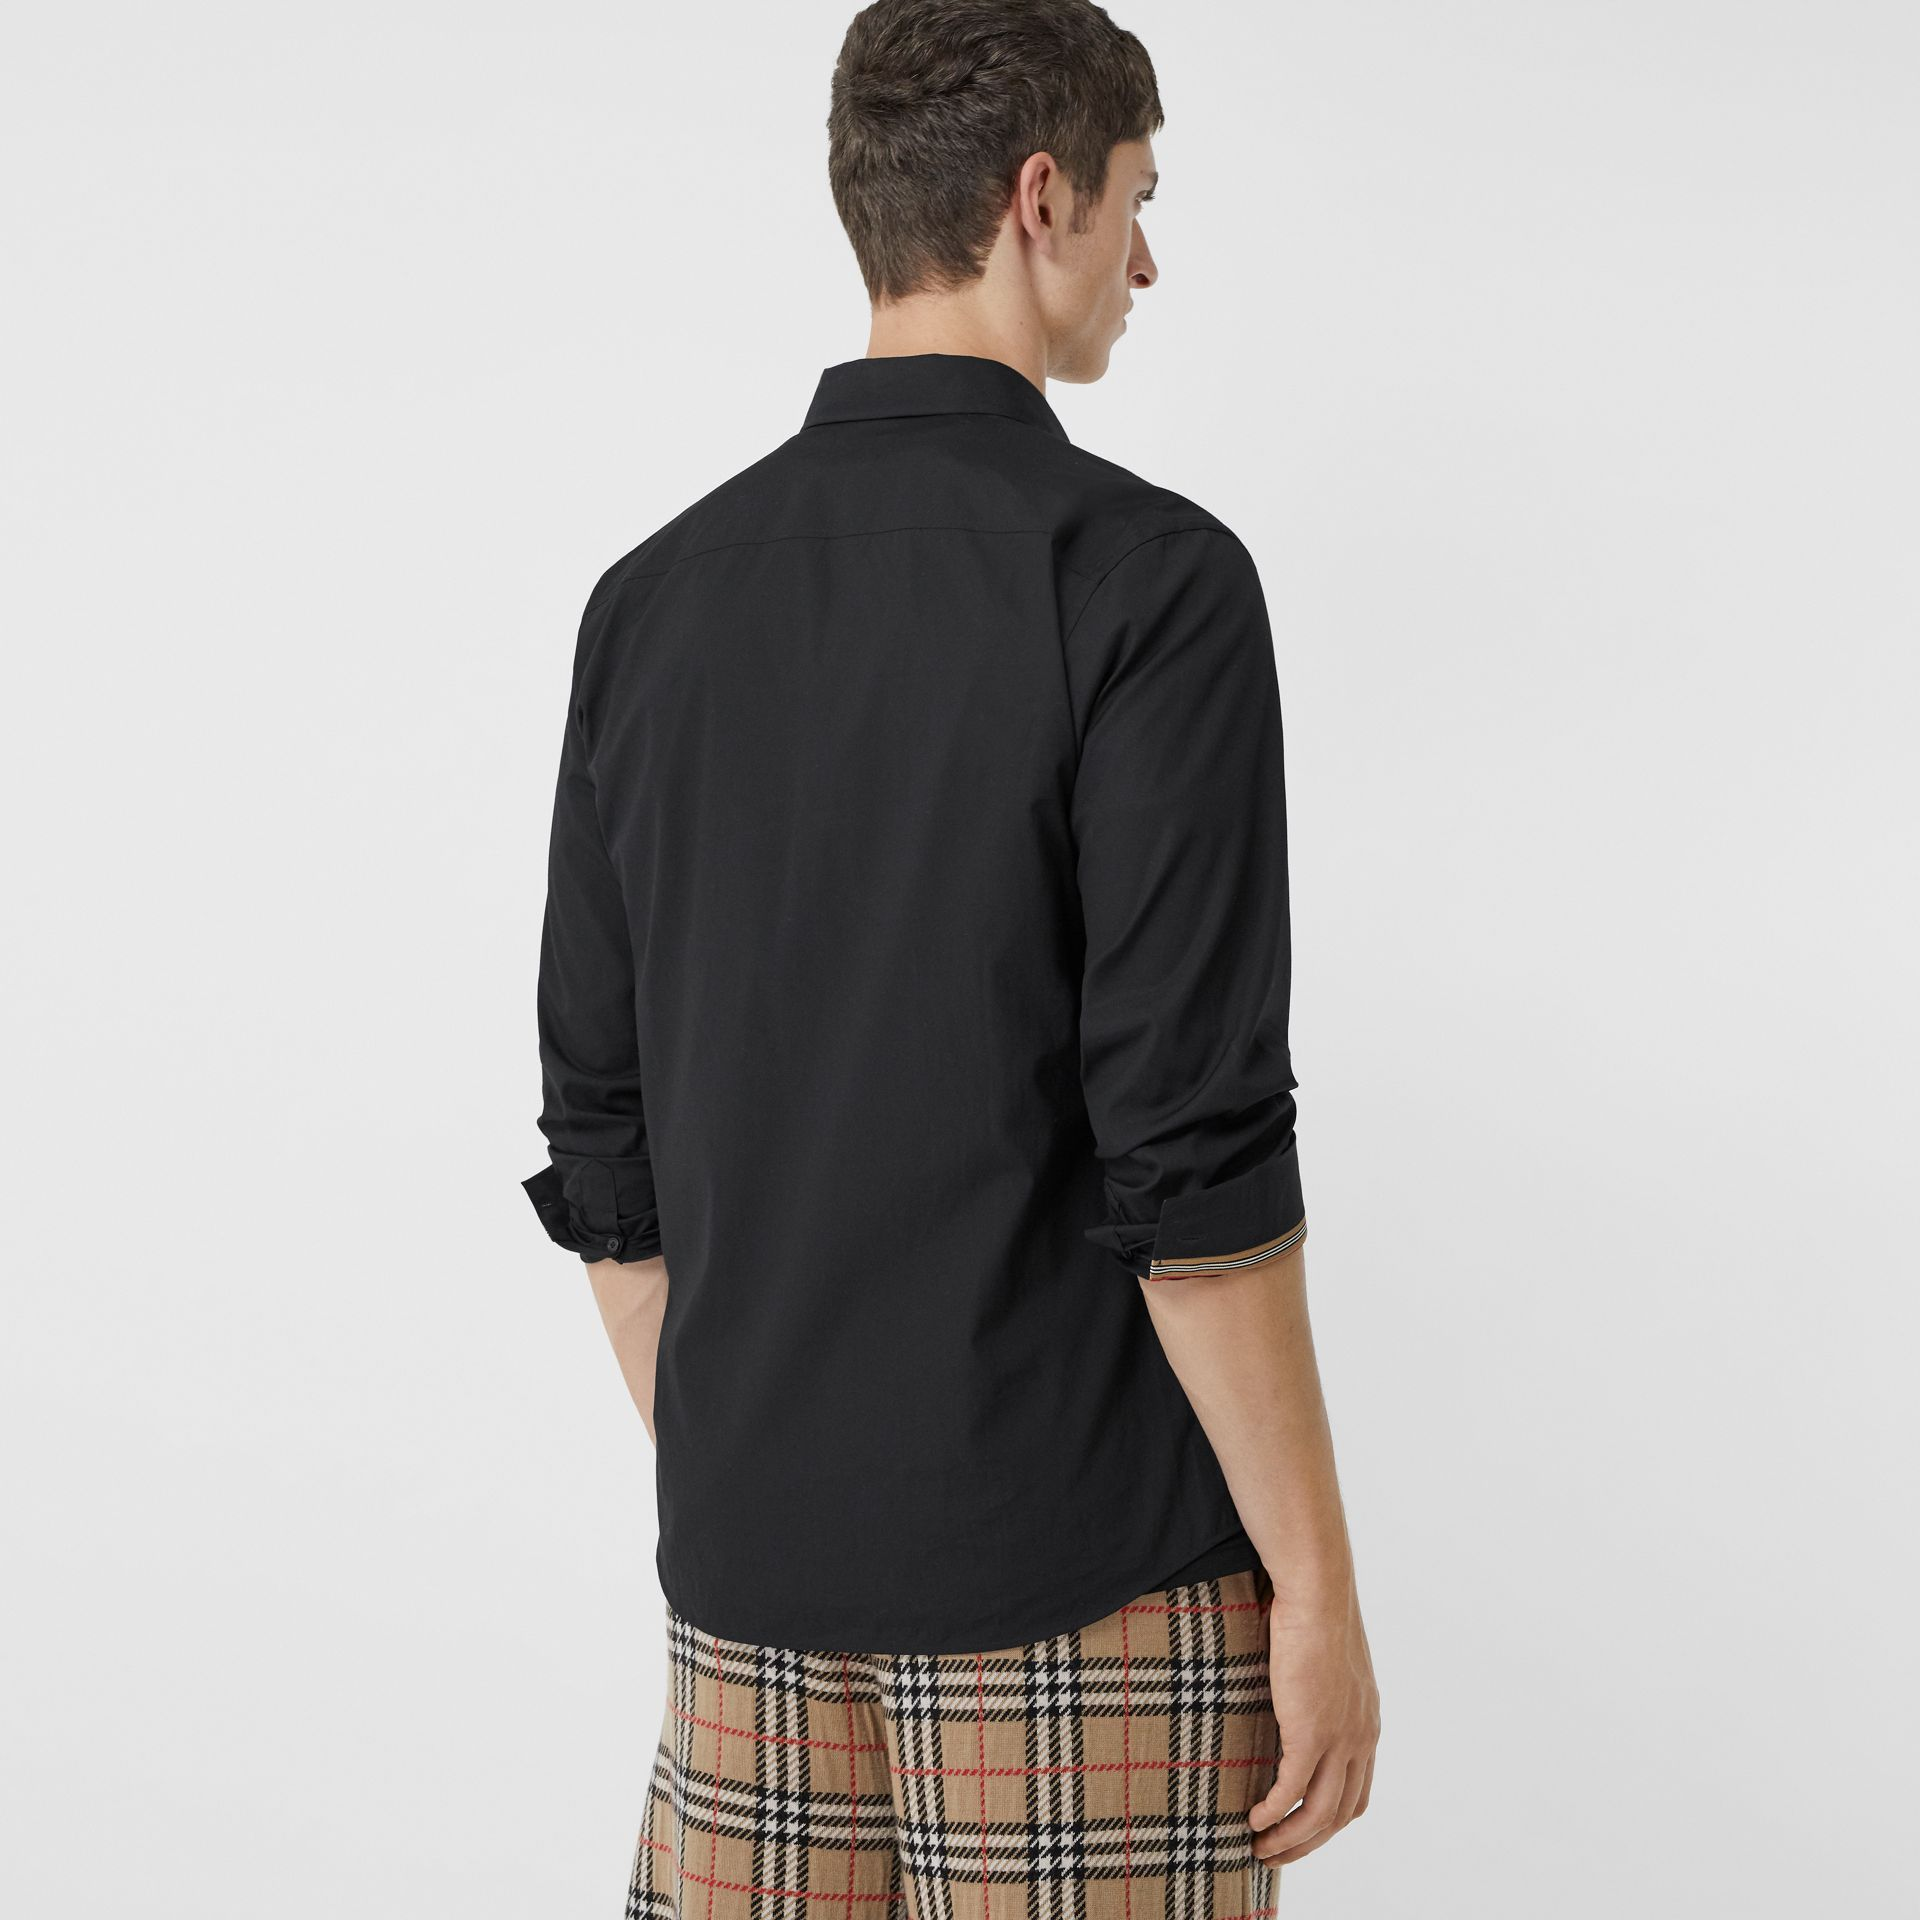 Monogram Motif Stretch Cotton Poplin Shirt in Black - Men | Burberry United States - gallery image 2